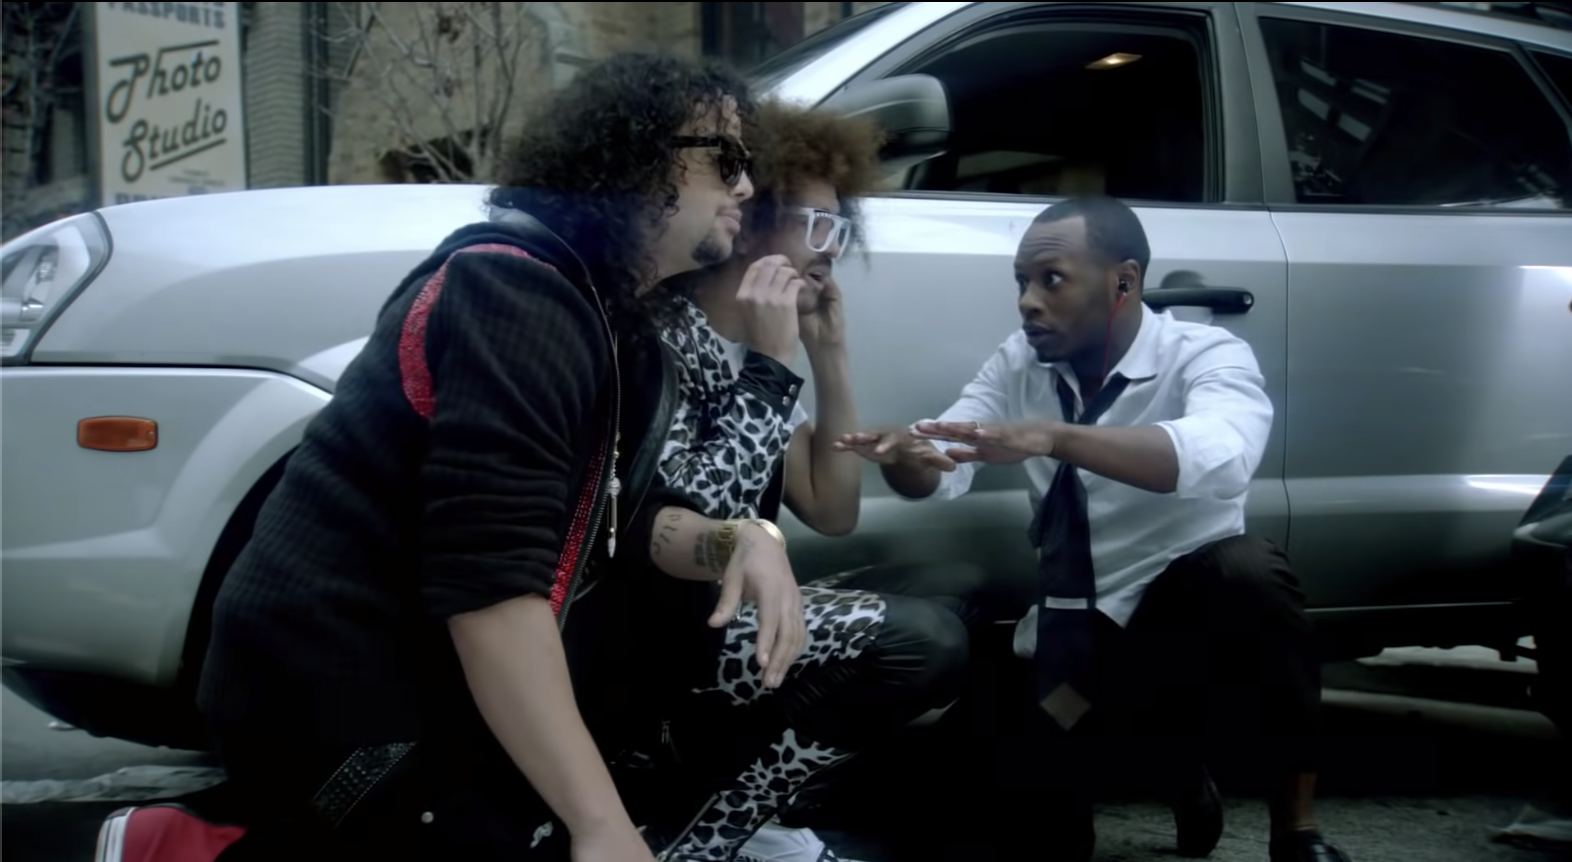 Redfoo, Sky Blu, and Malcolm hiding behind a car.